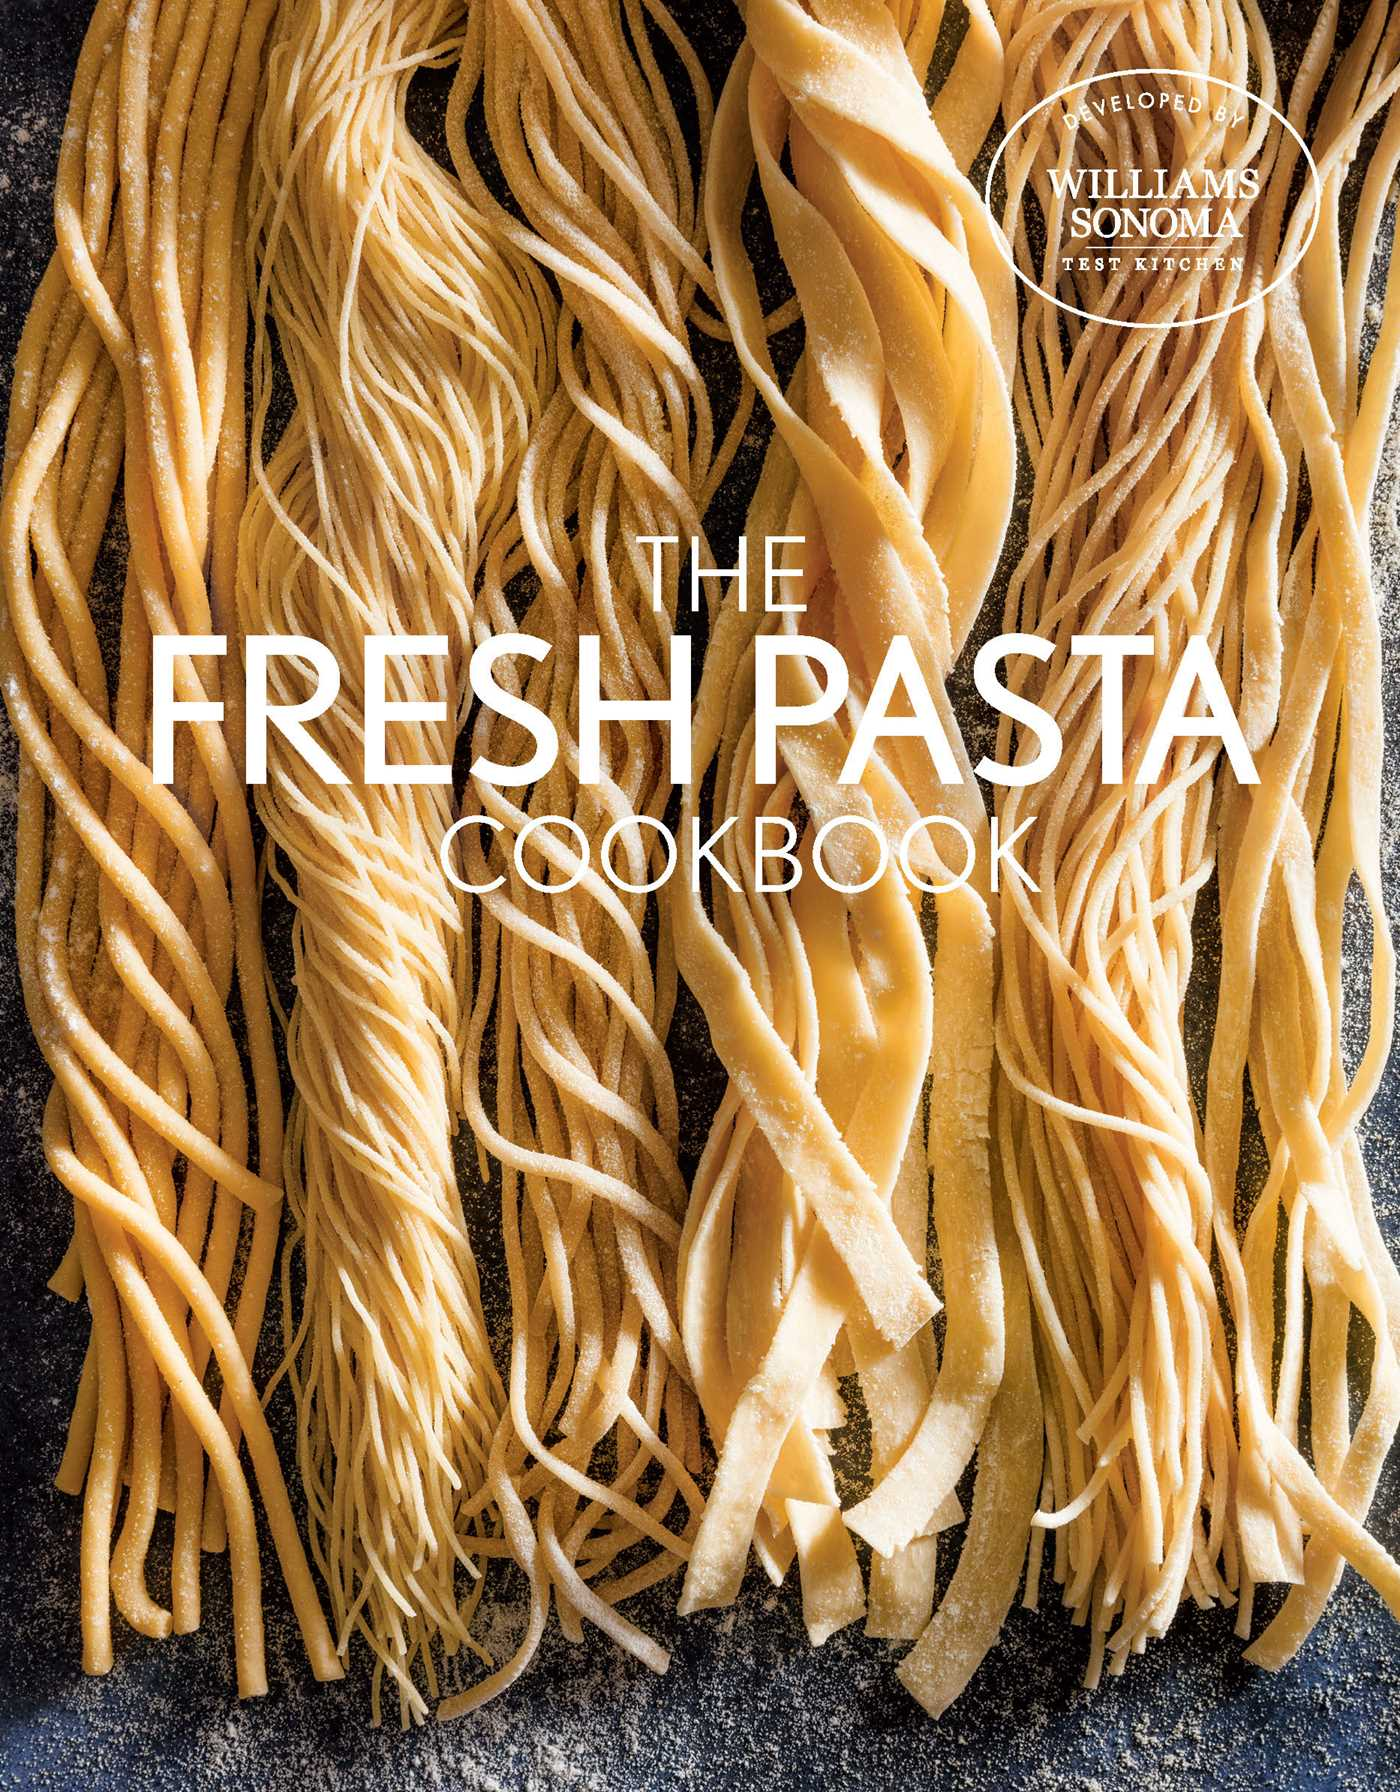 Fresh pasta cookbook 9781681884004 hr